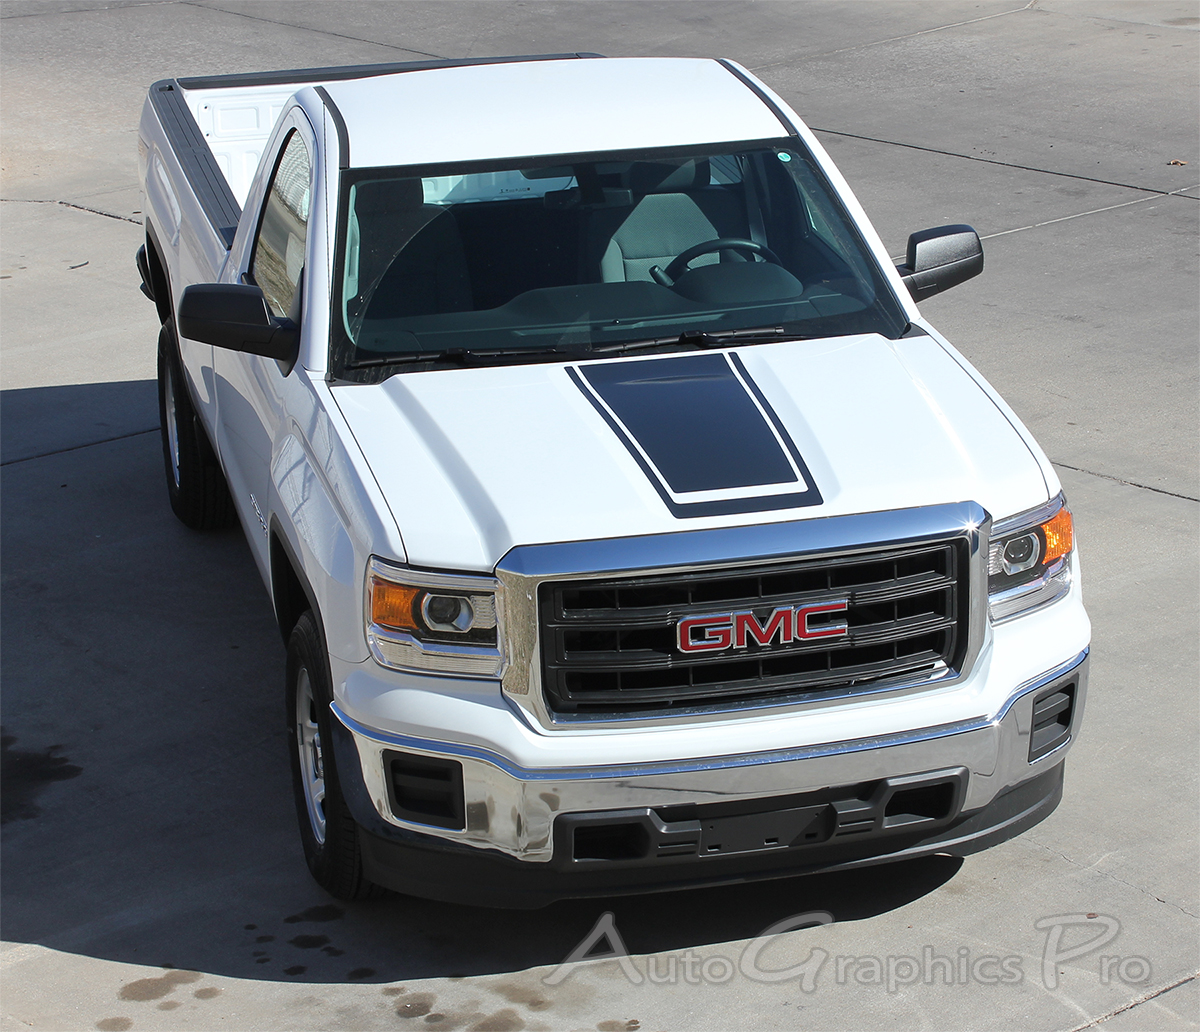 GMC Sierra Stripes MIDWAY Hood Decals Truck Center - Truck decals and graphics